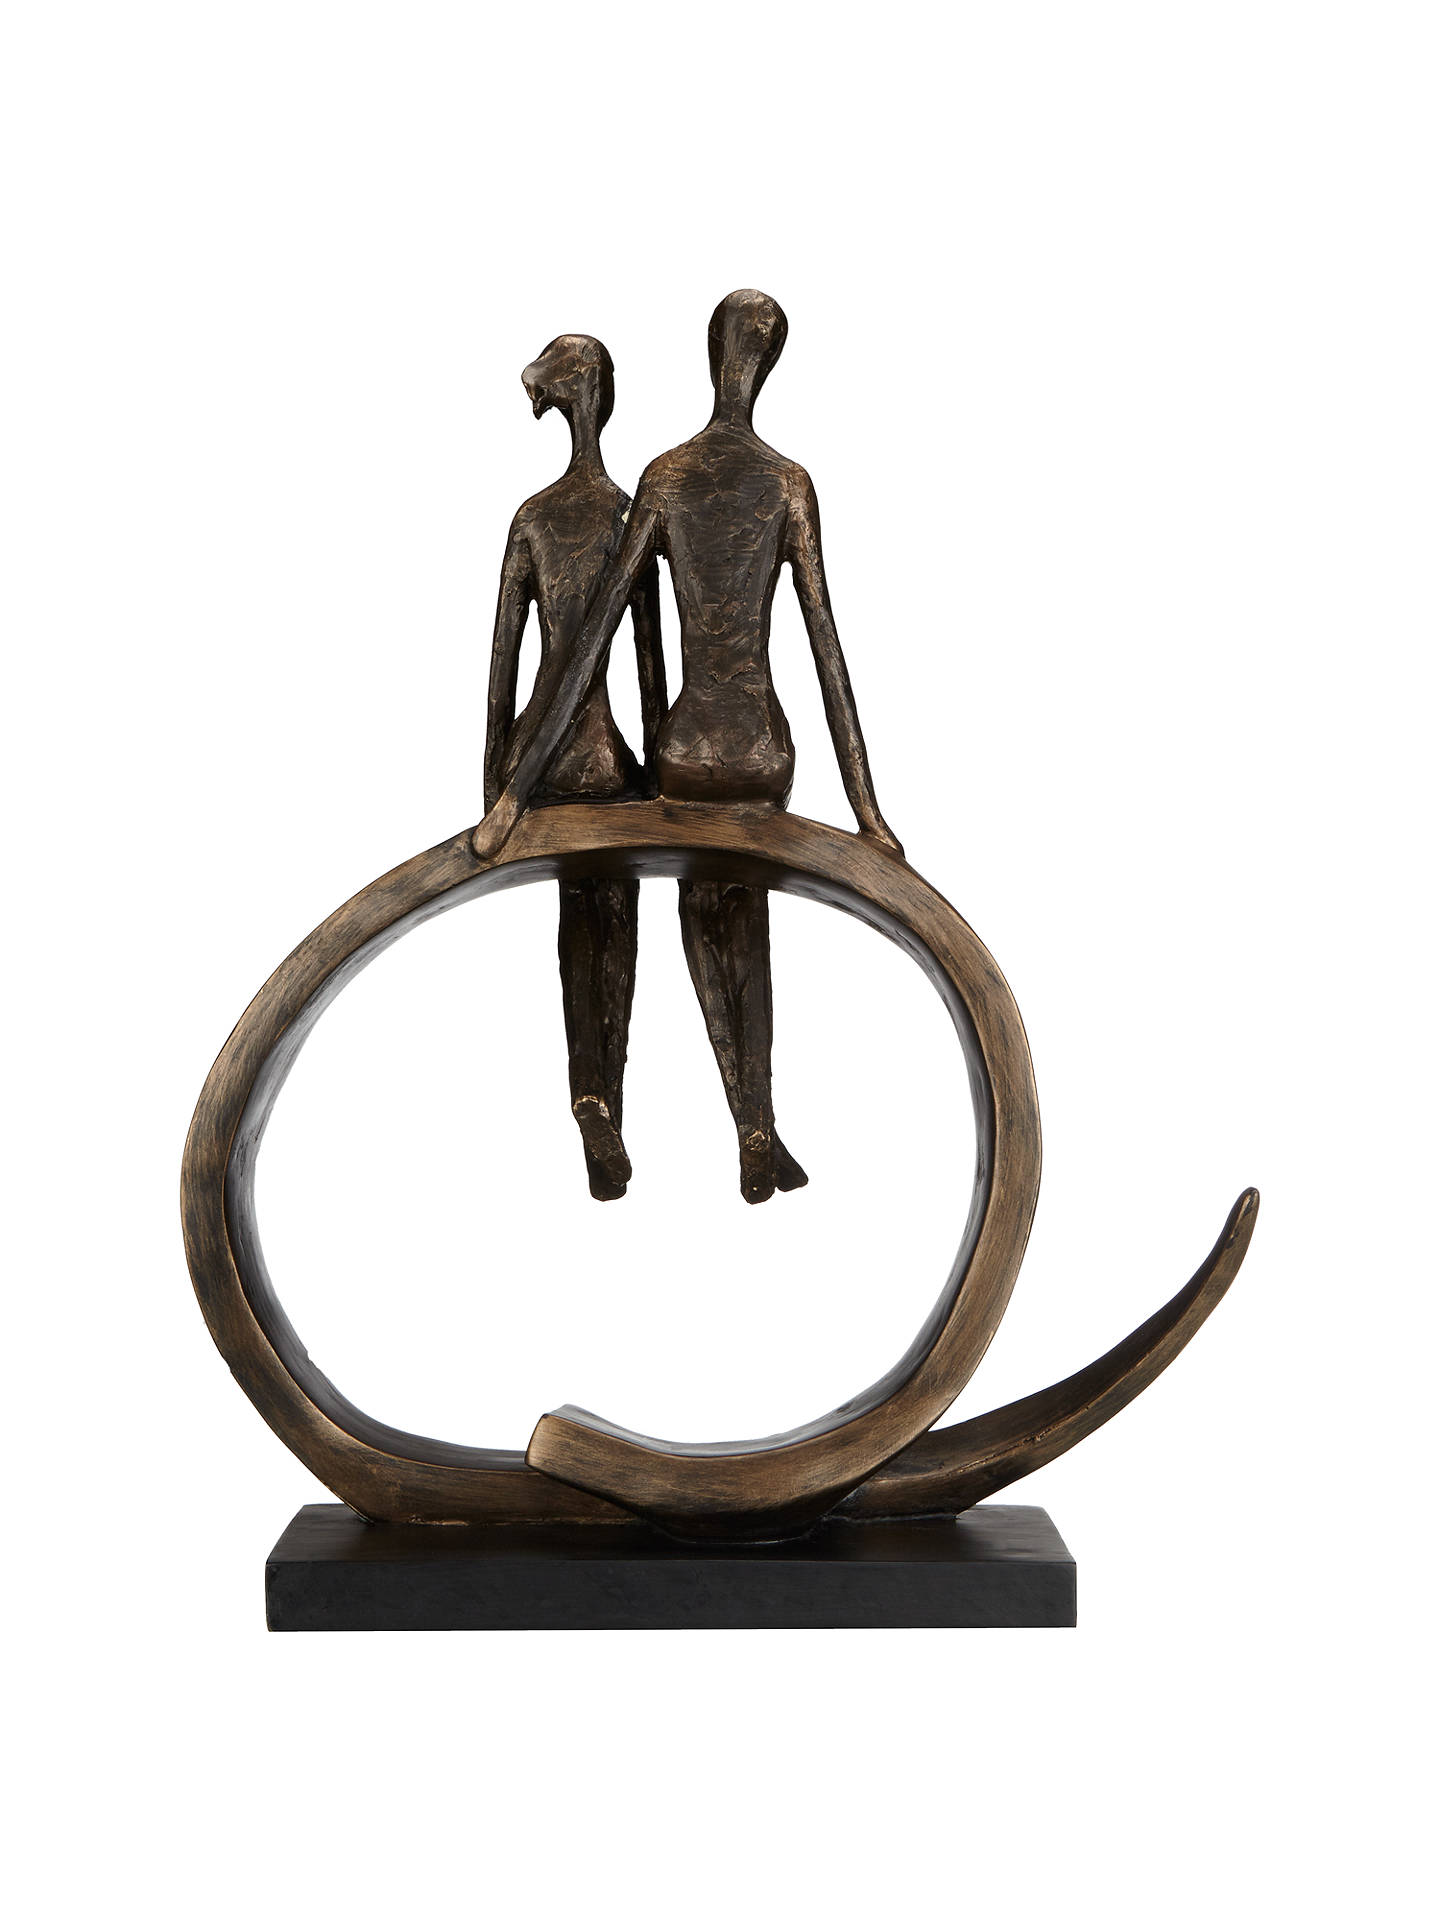 BuyLibra Seated Couple Sculpture Online at johnlewis.com